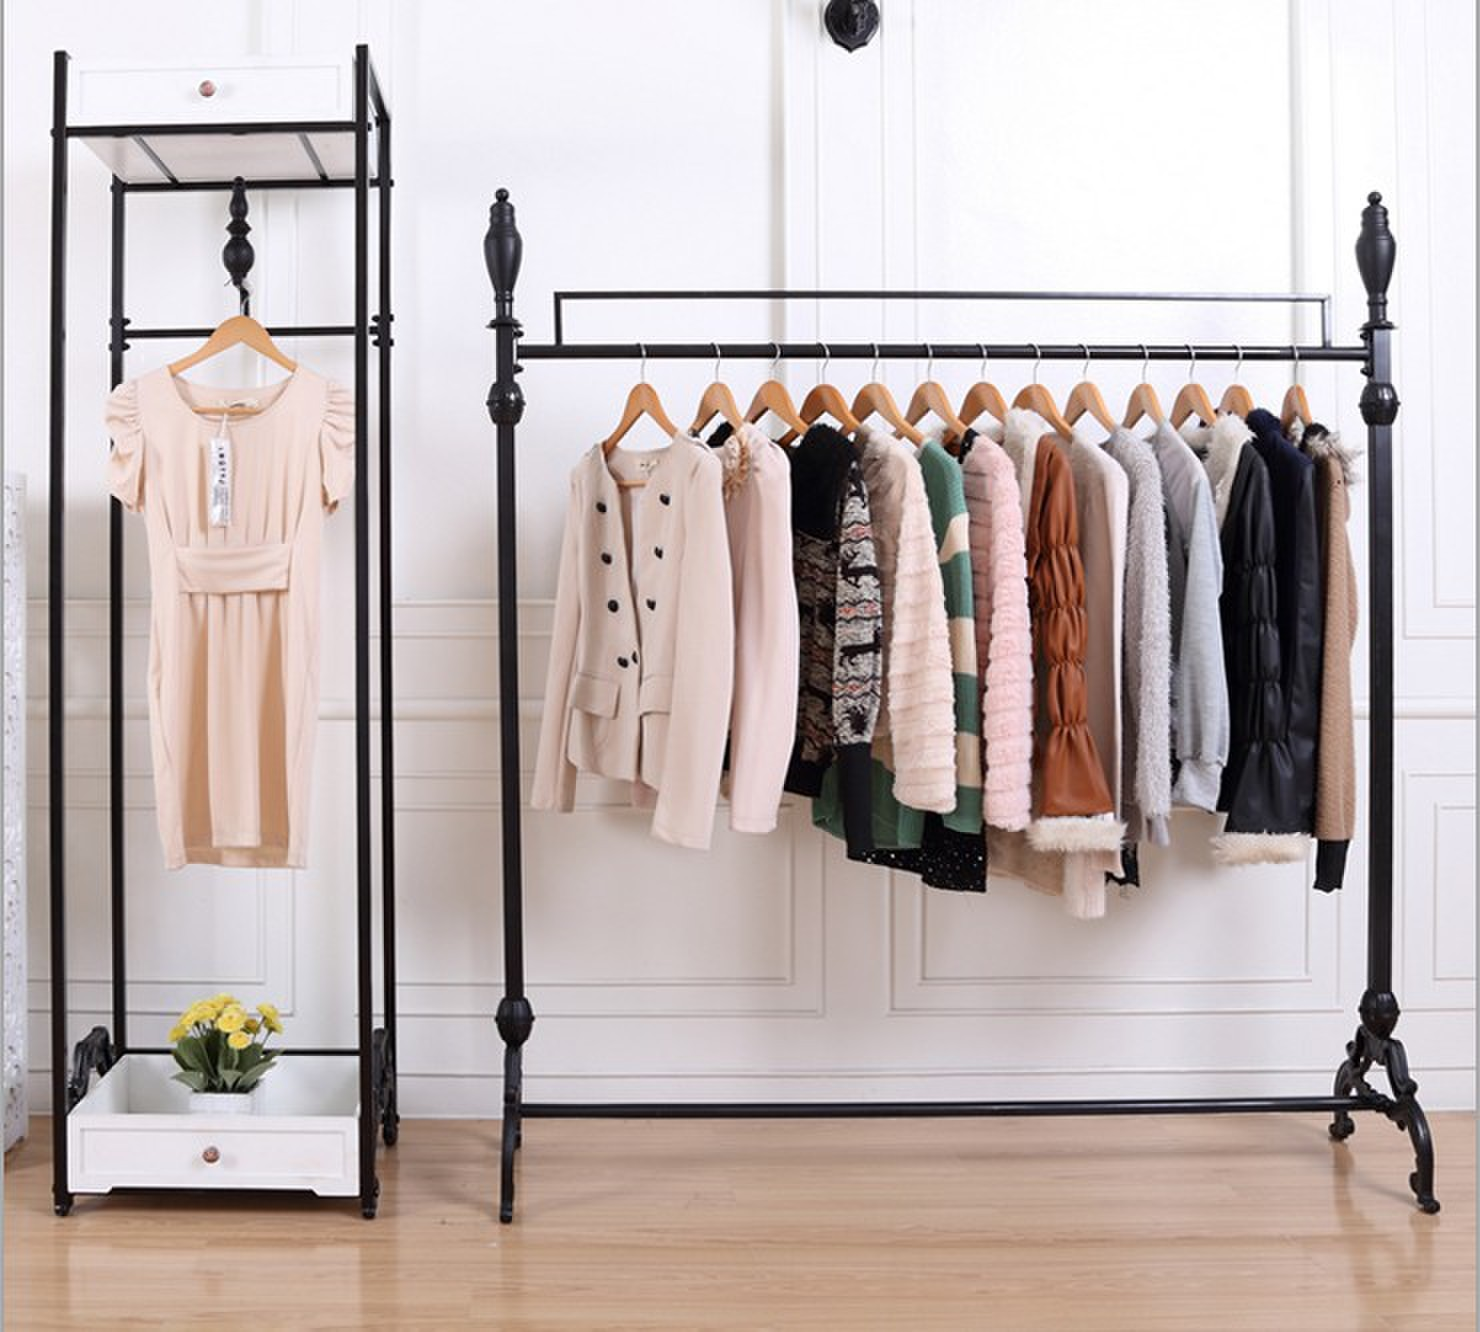 Tips for Creating a Capsule Wardrobe Collection